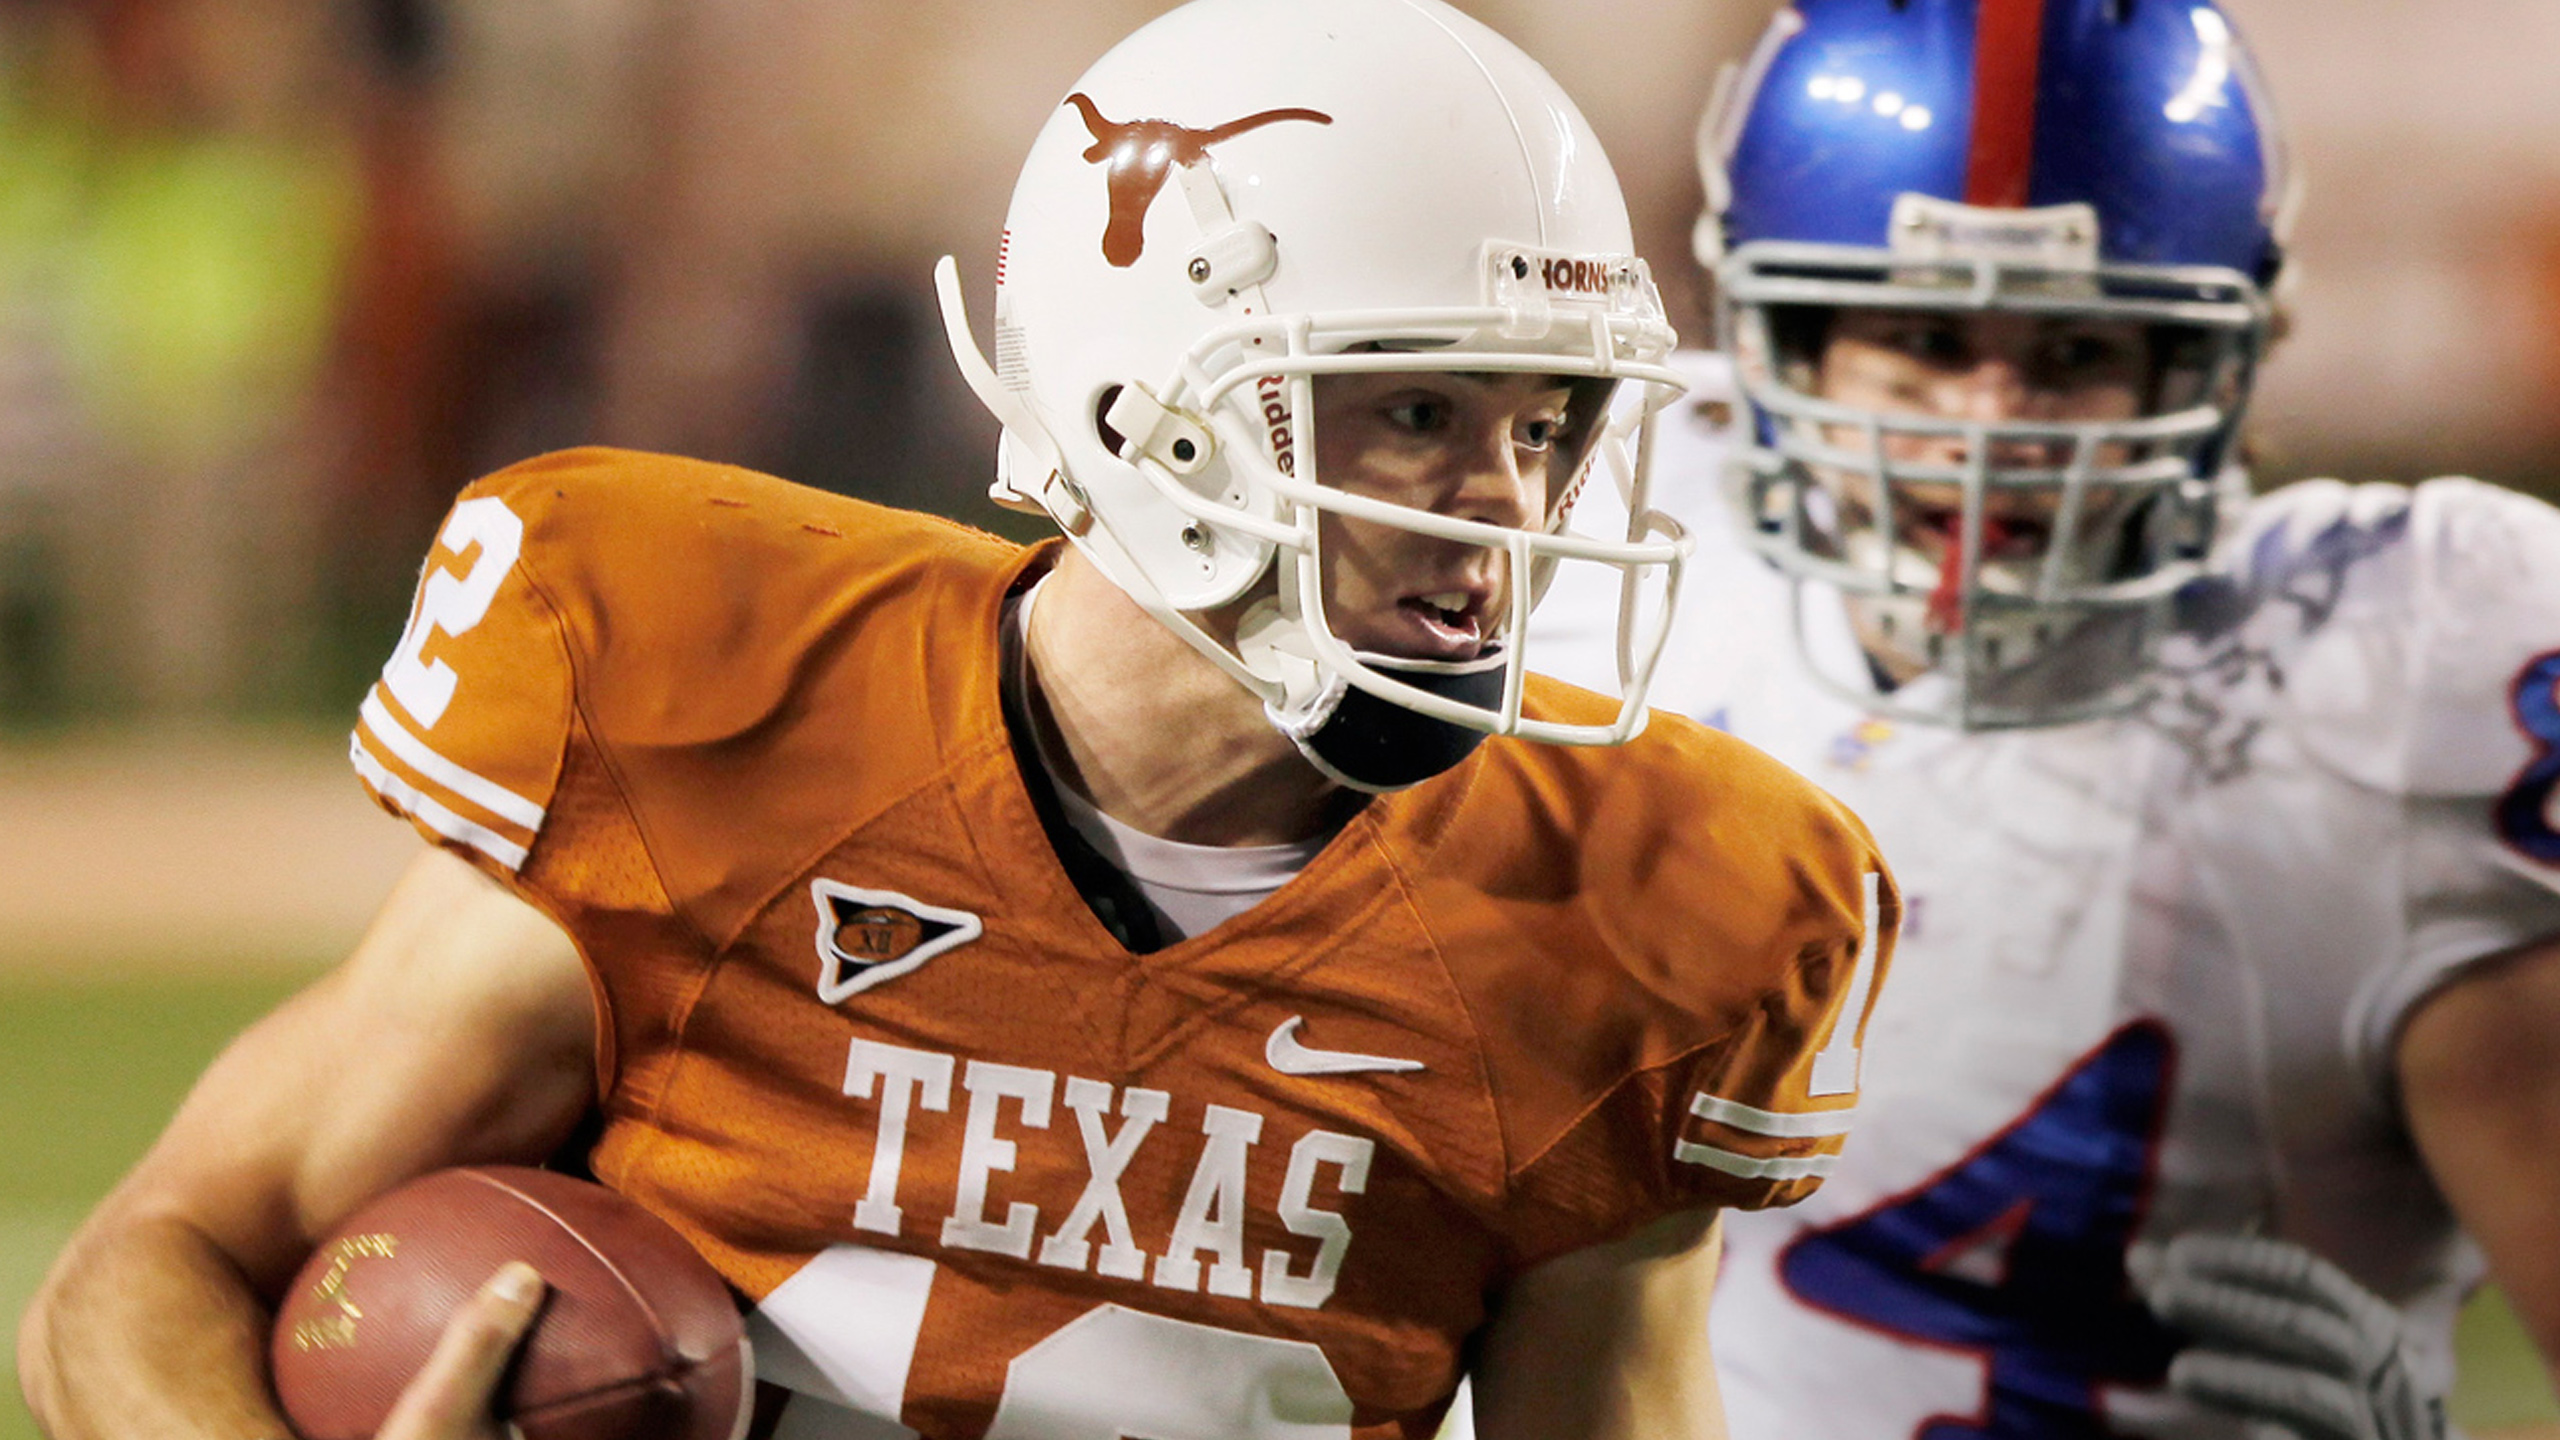 Kansas Jayhawks vs. Texas Longhorns - 11/21/2009 (re-air)